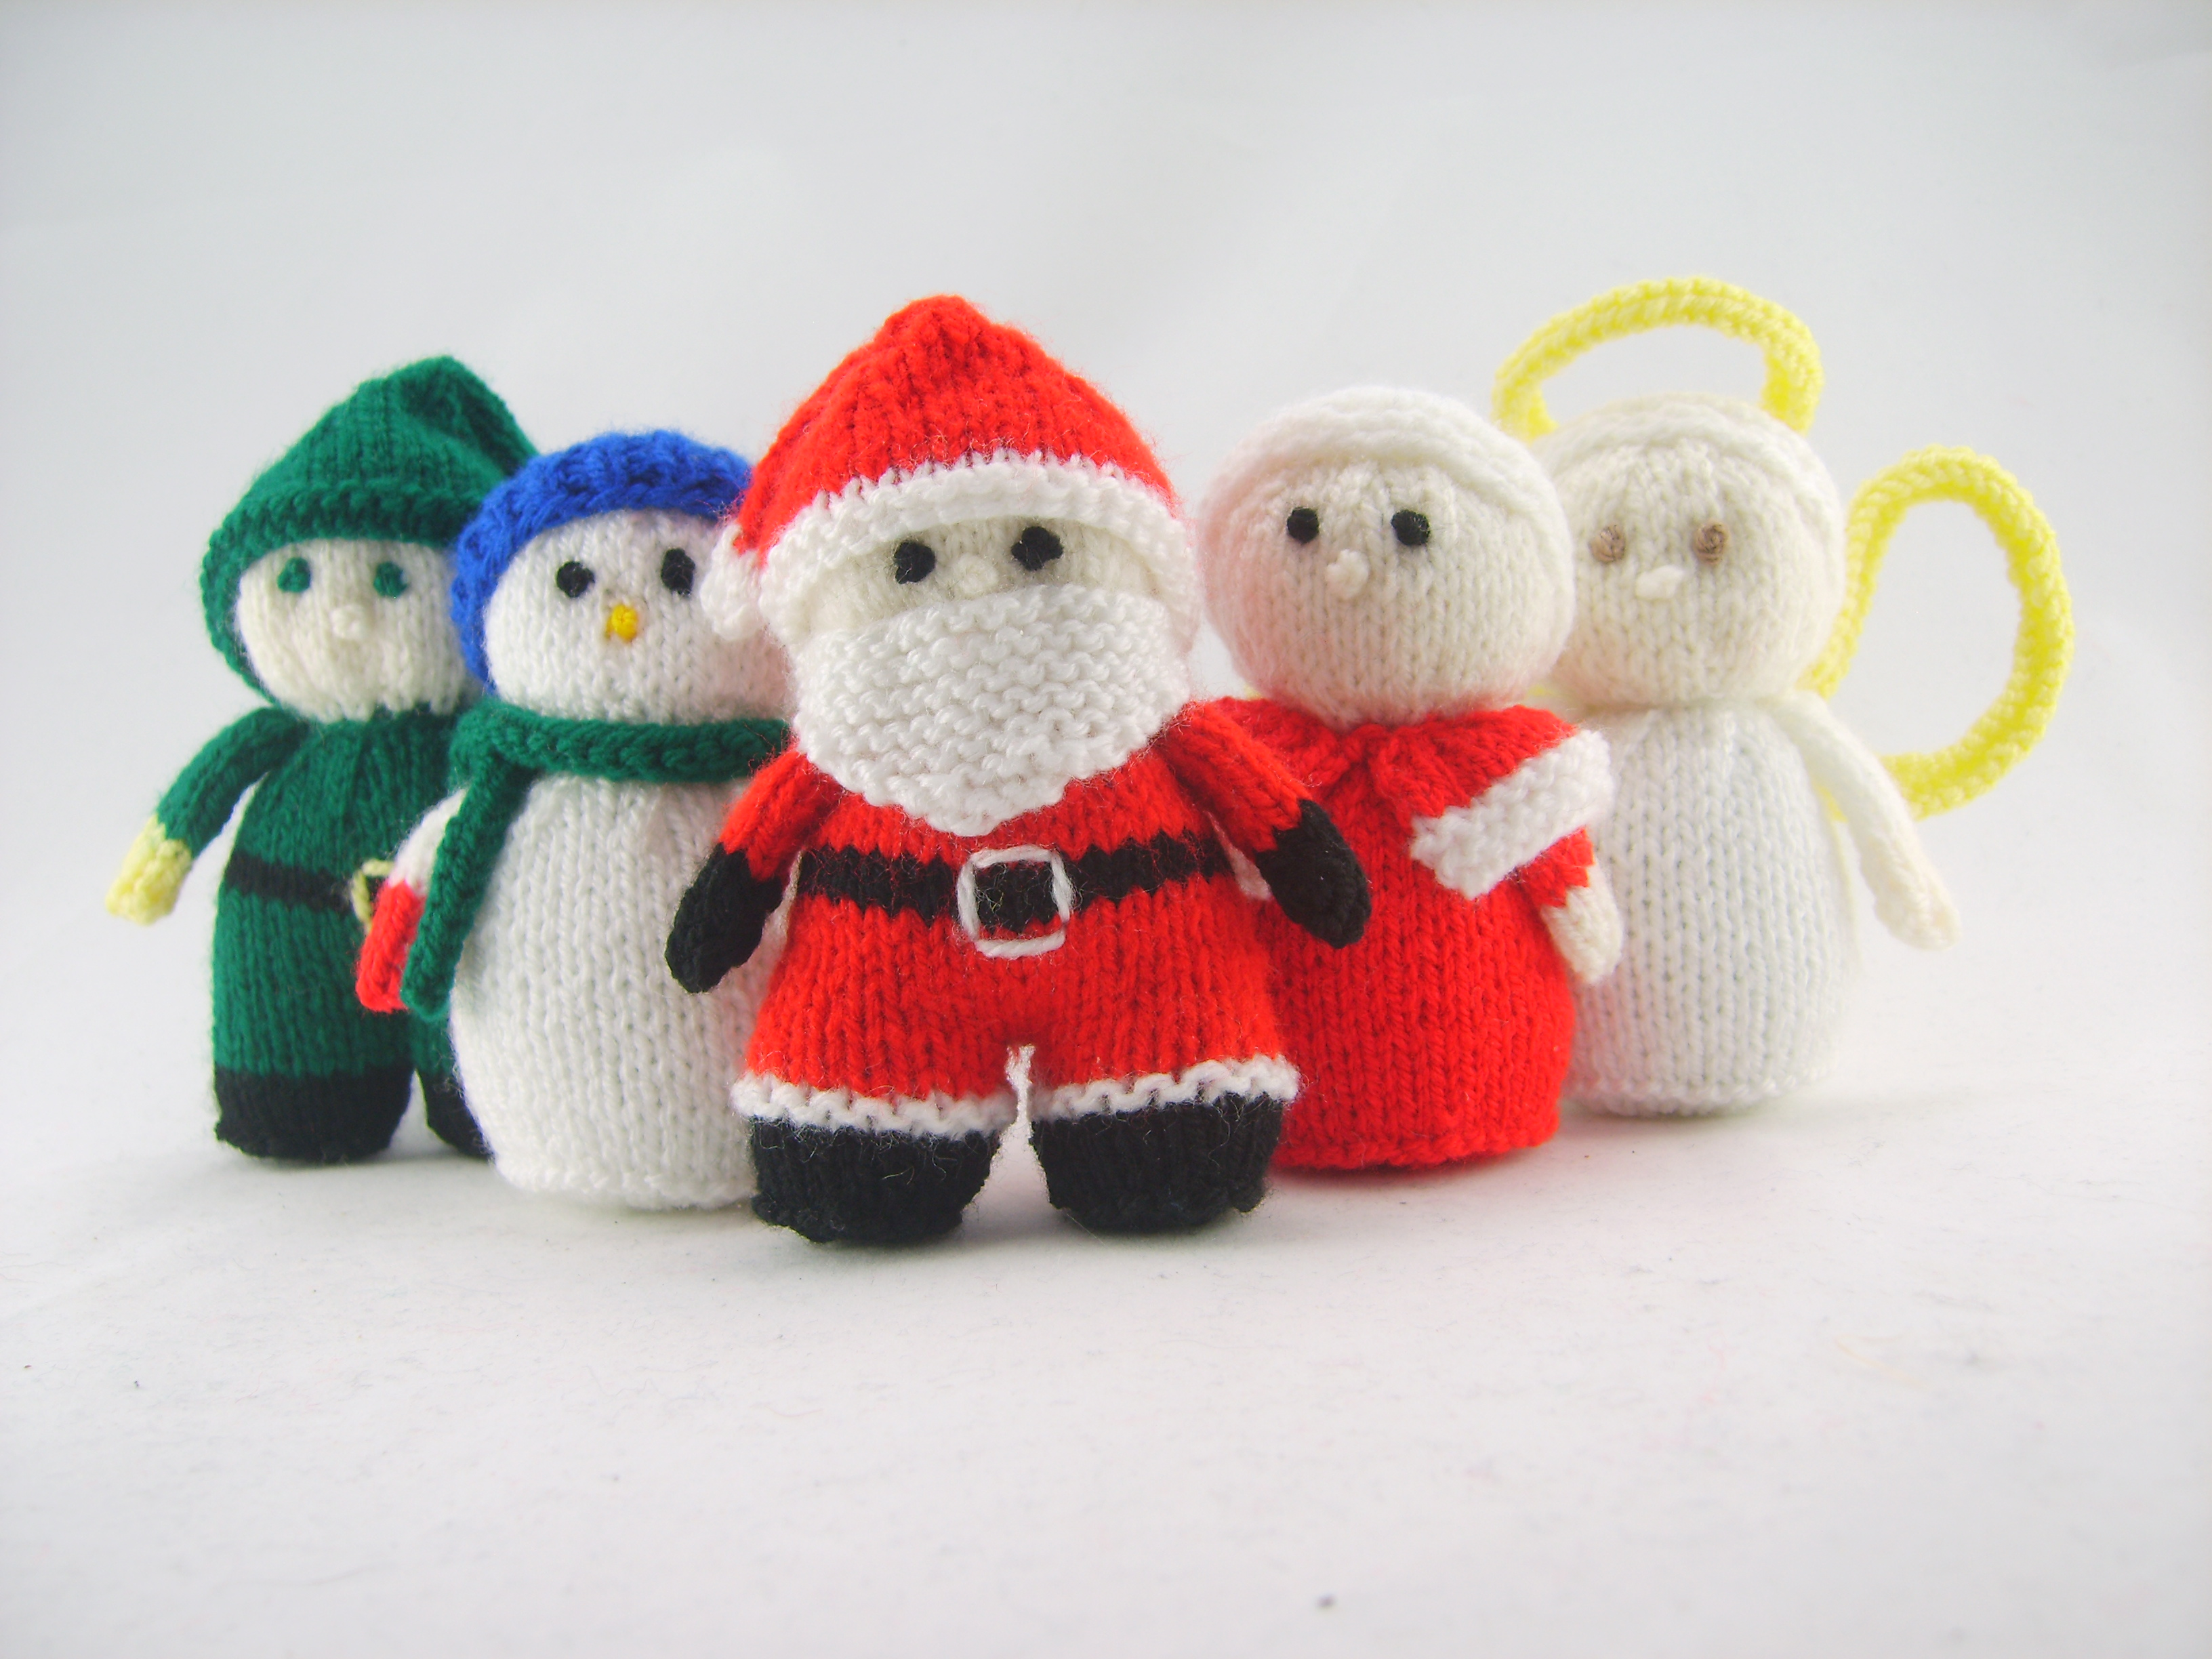 Snowman Knitting Patterns – Knitting by Post